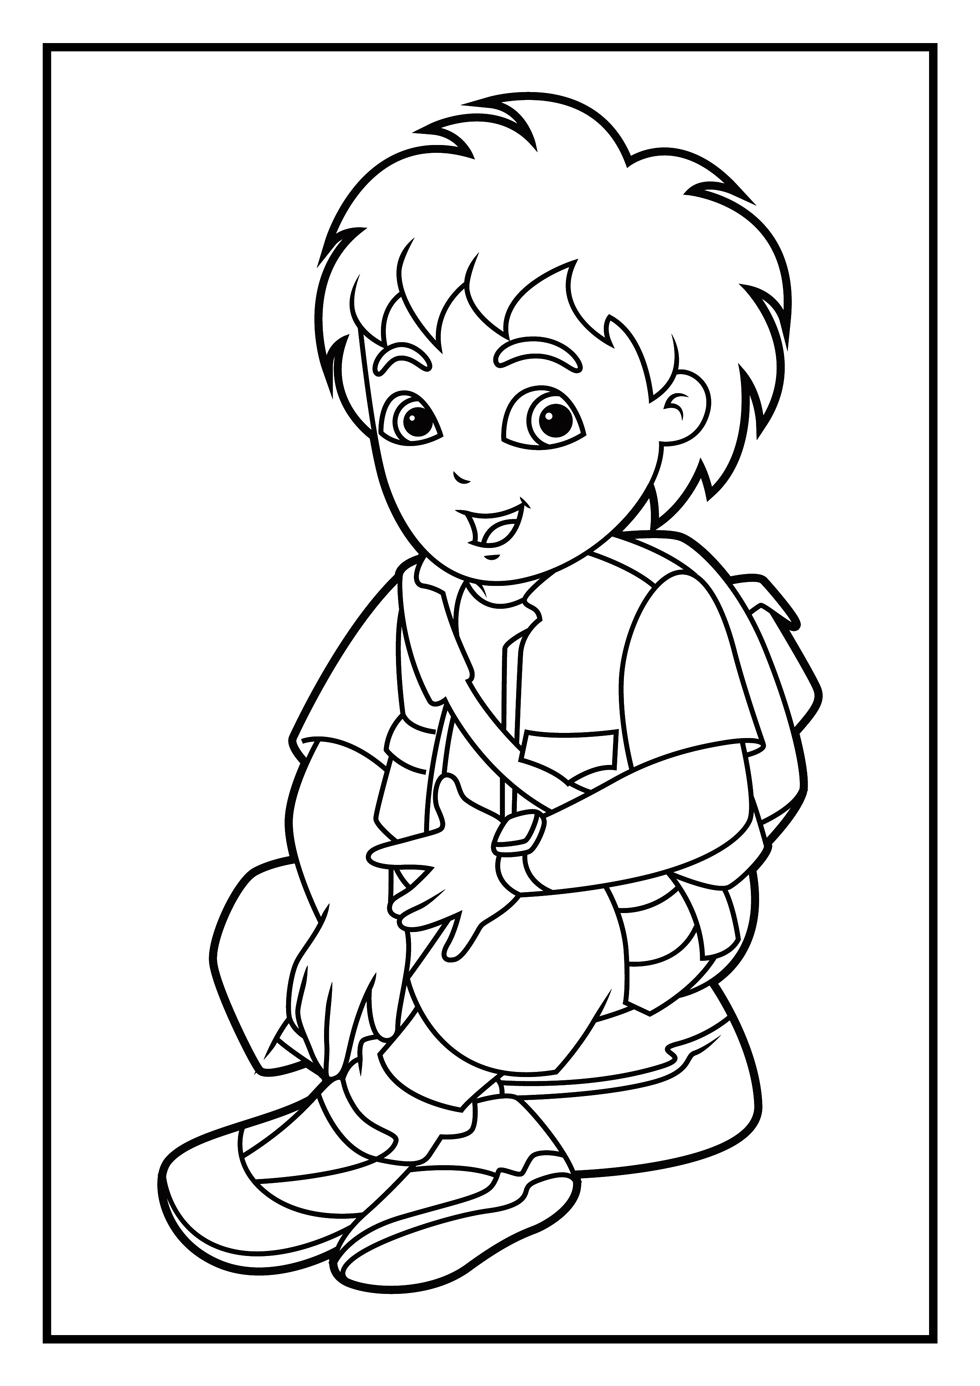 dora diego coloring pages - photo#28